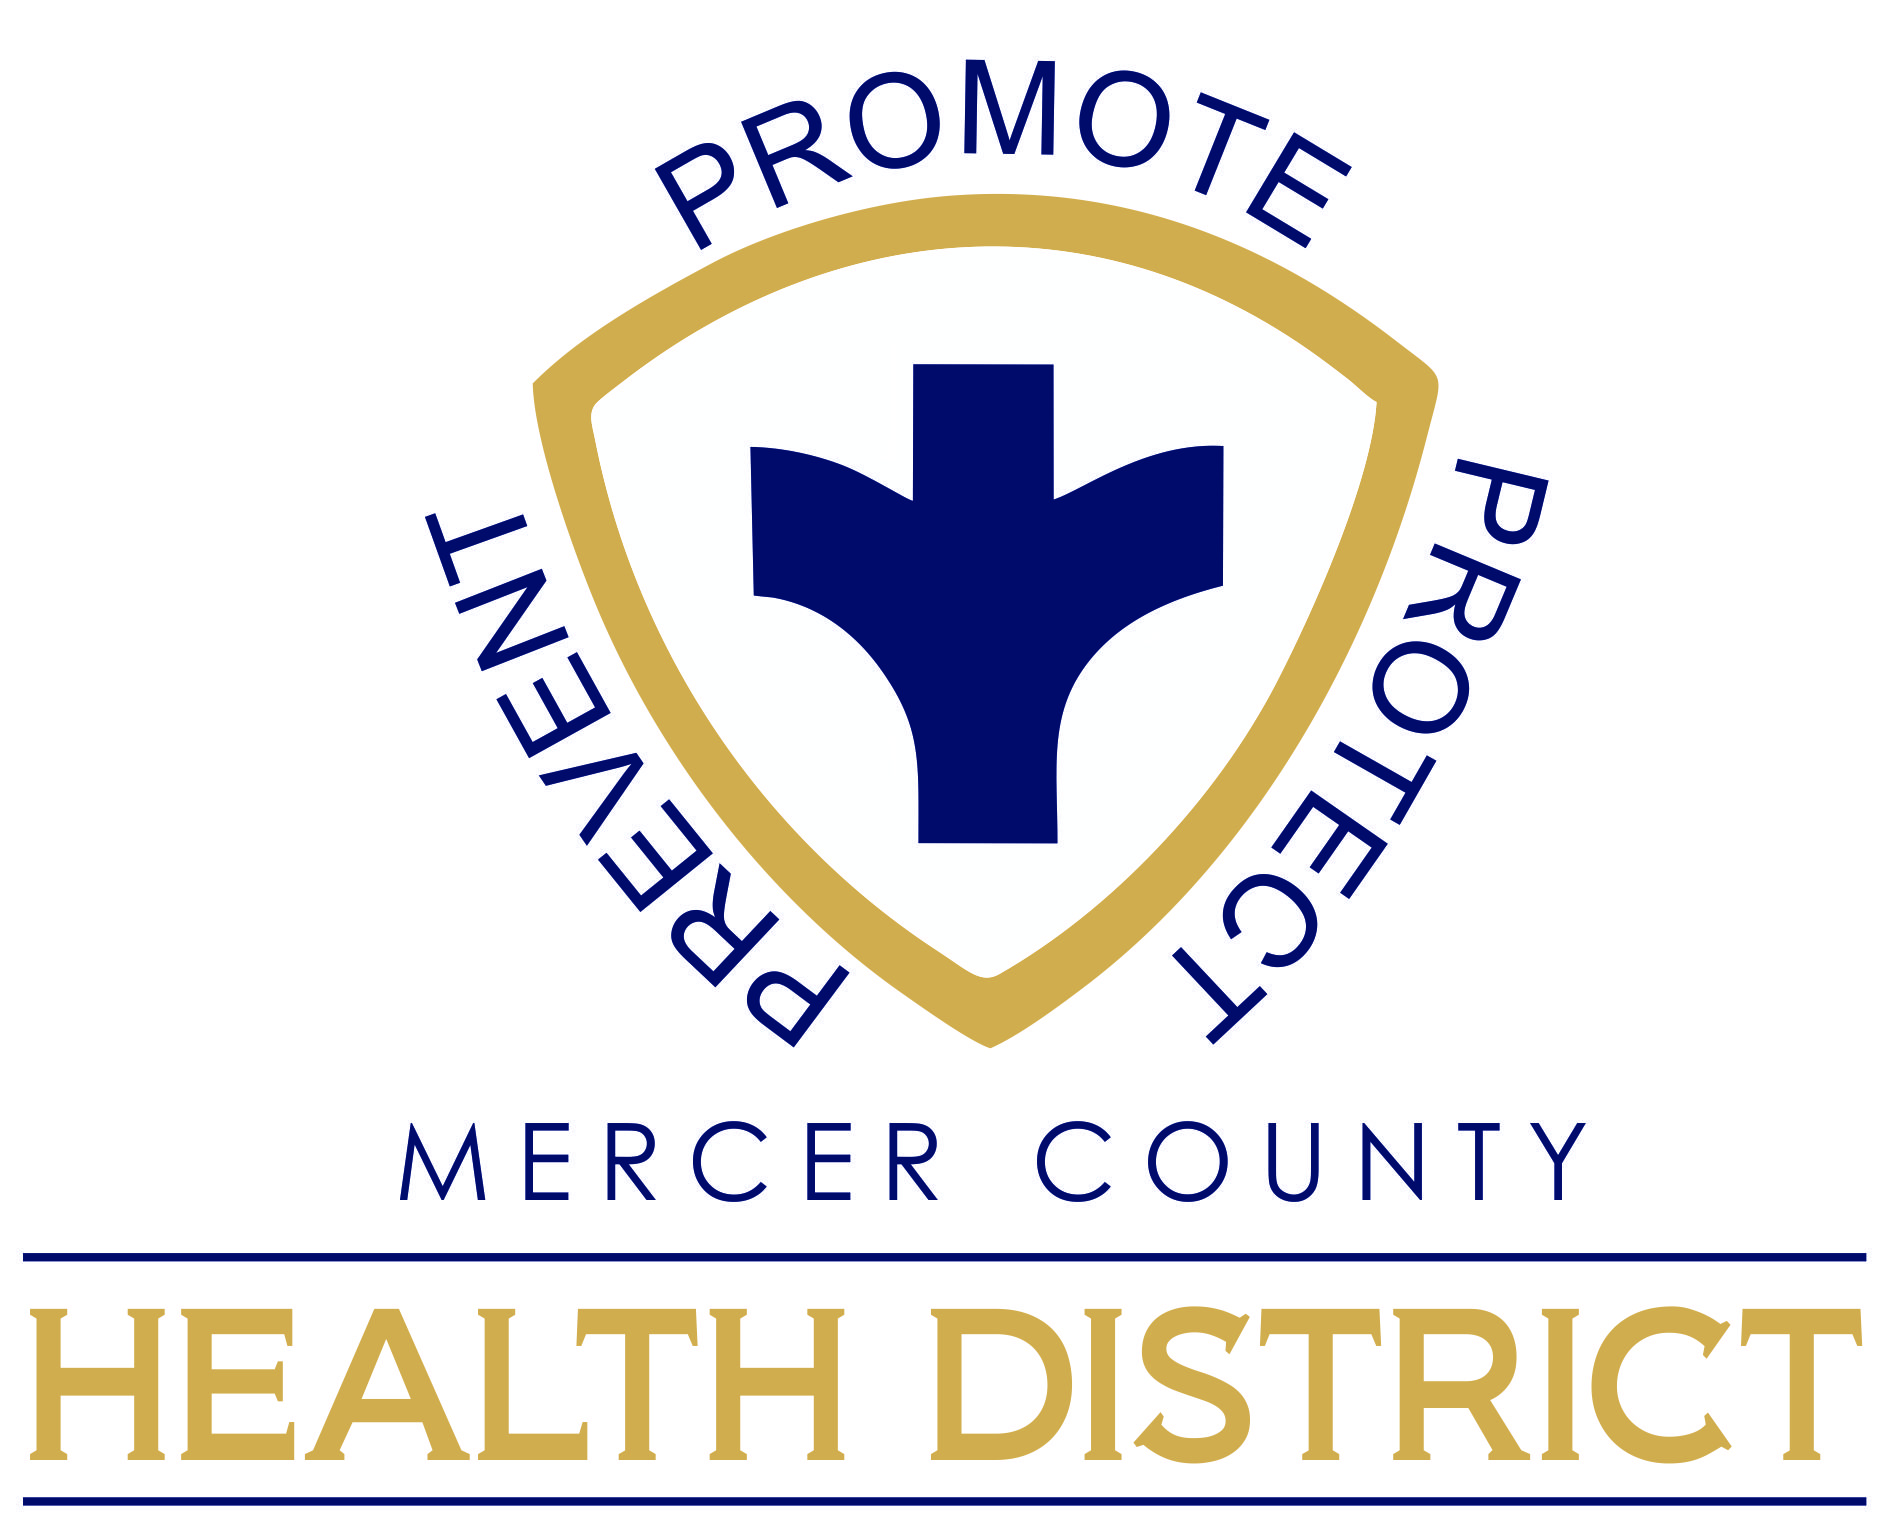 Mercer County Health District